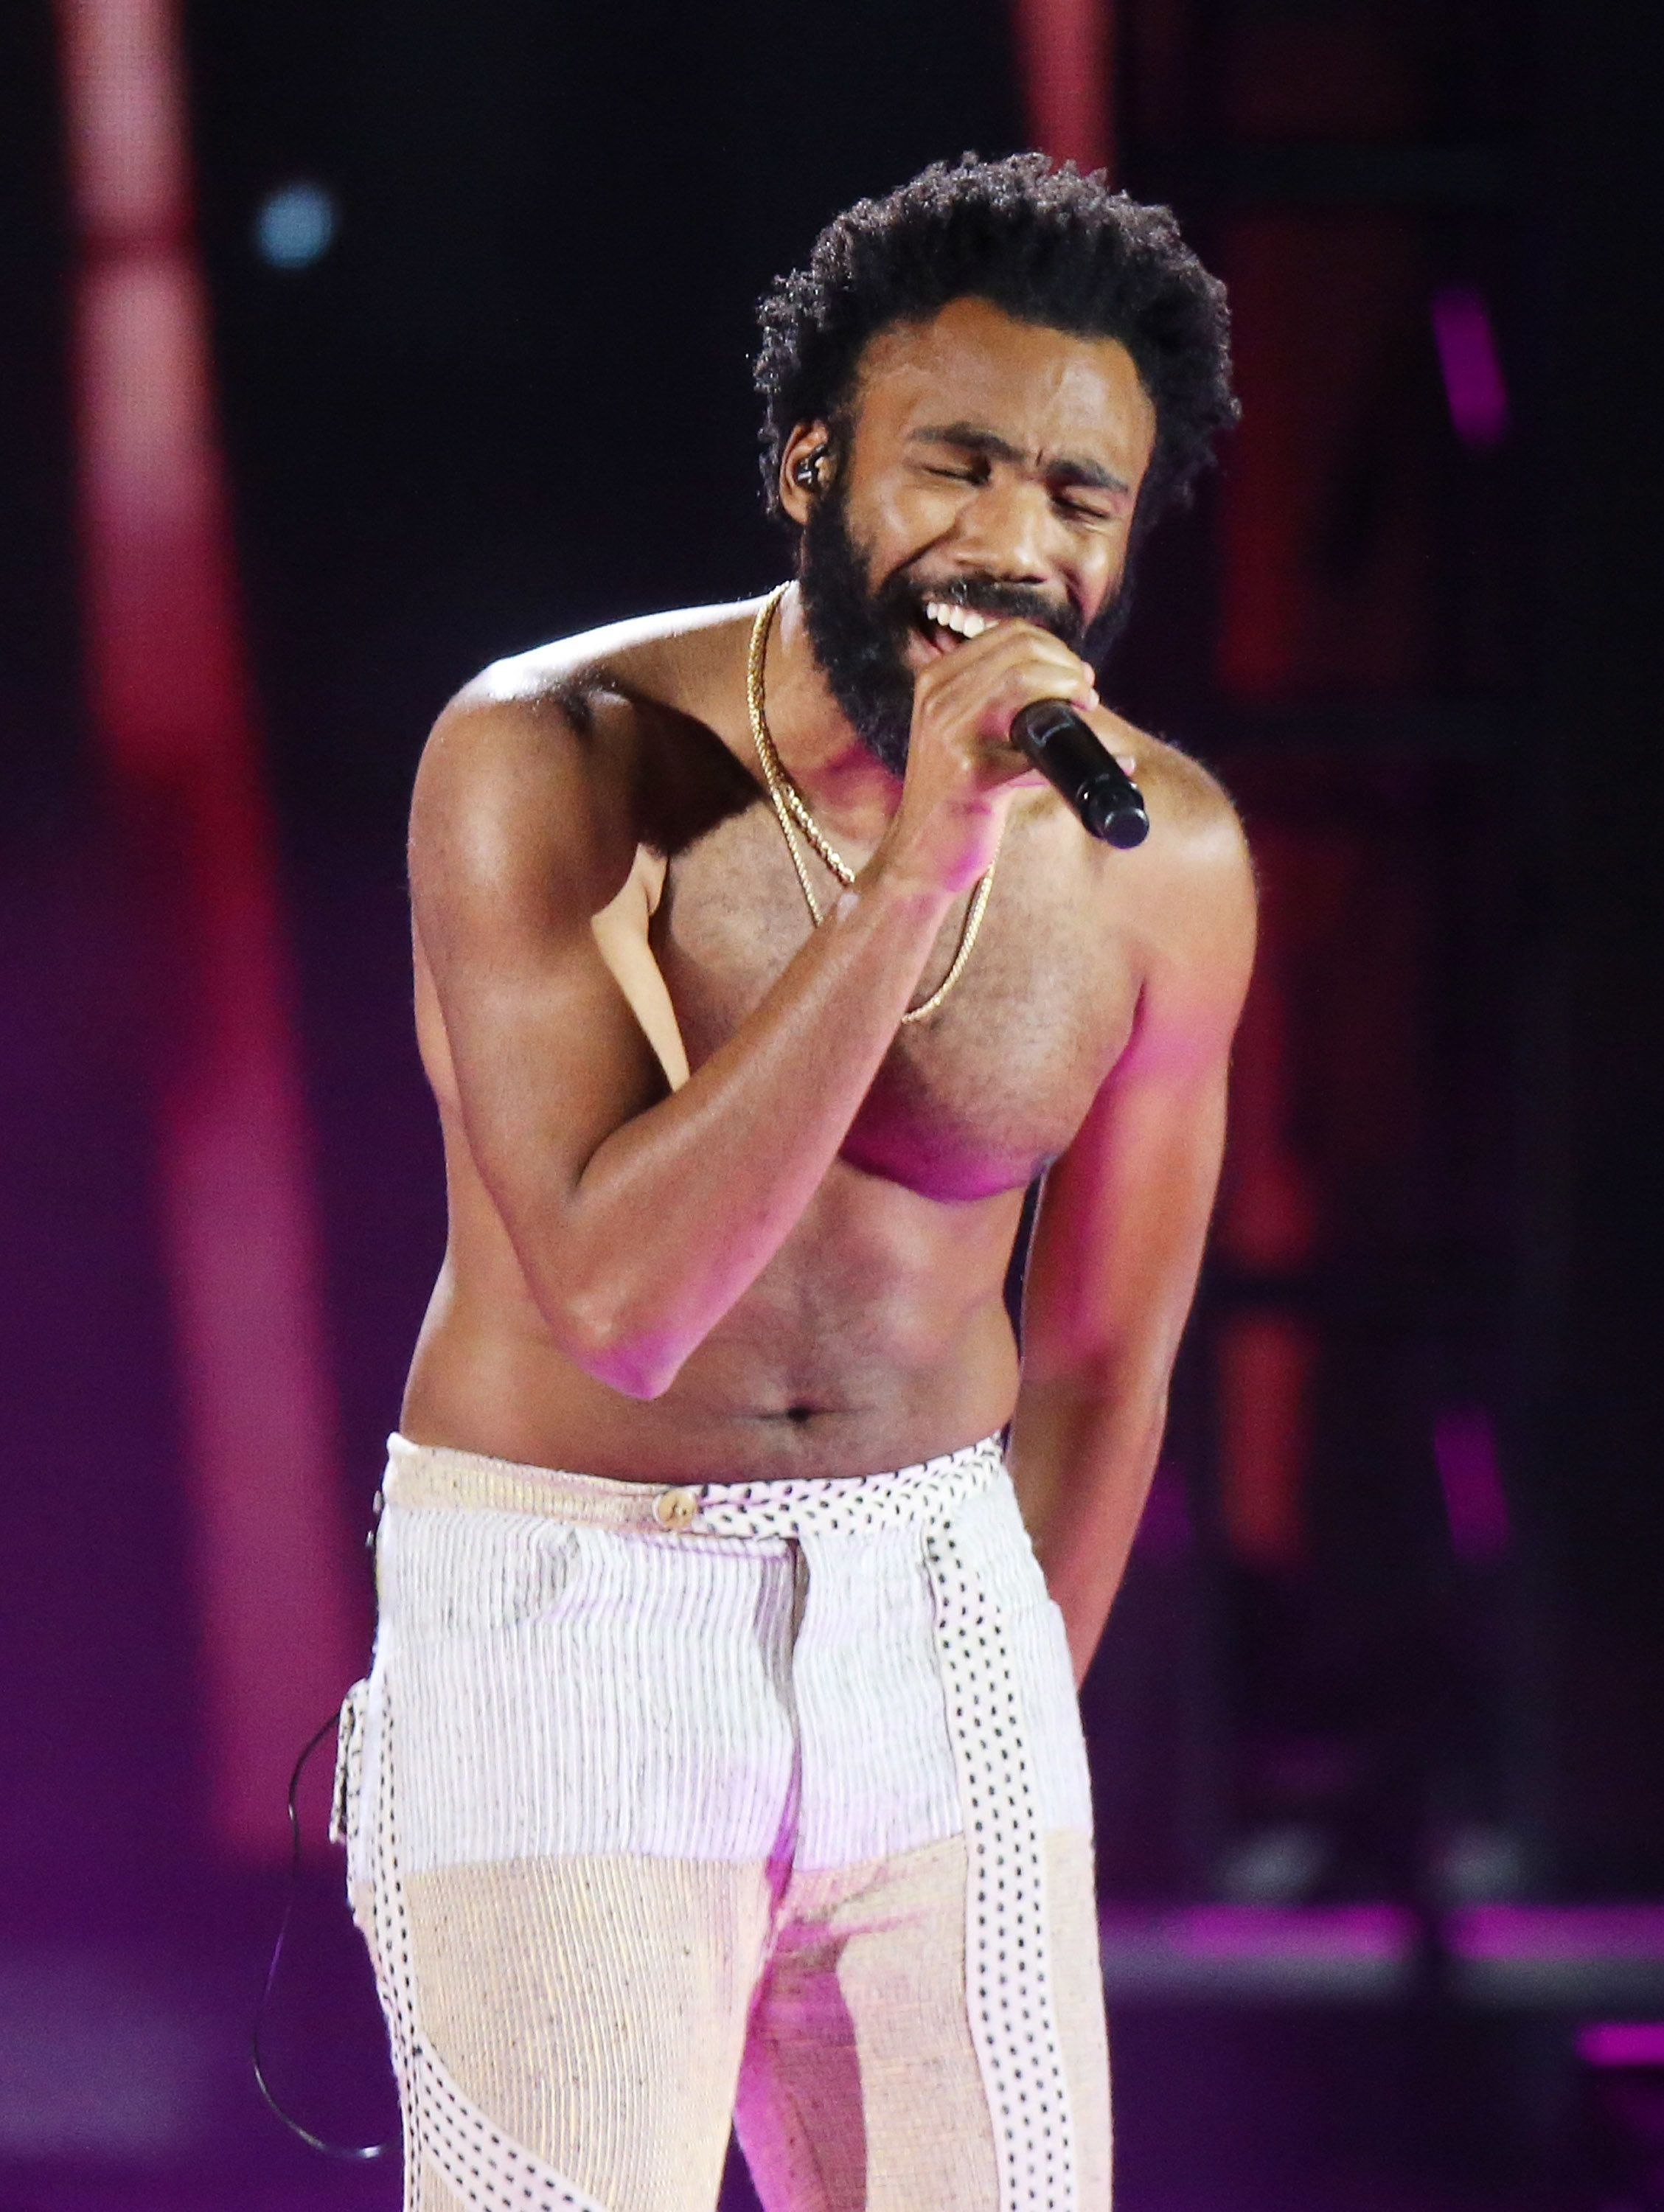 LAS VEGAS, NV - SEPTEMBER 21:  Donald Glover aka Childish Gambino performs onstage during the 2018 iHeartRadio Music Festival - Day 1 held at T-Mobile Arena on September 21, 2018 in Las Vegas, Nevada.  (Photo by Michael Tran/FilmMagic)